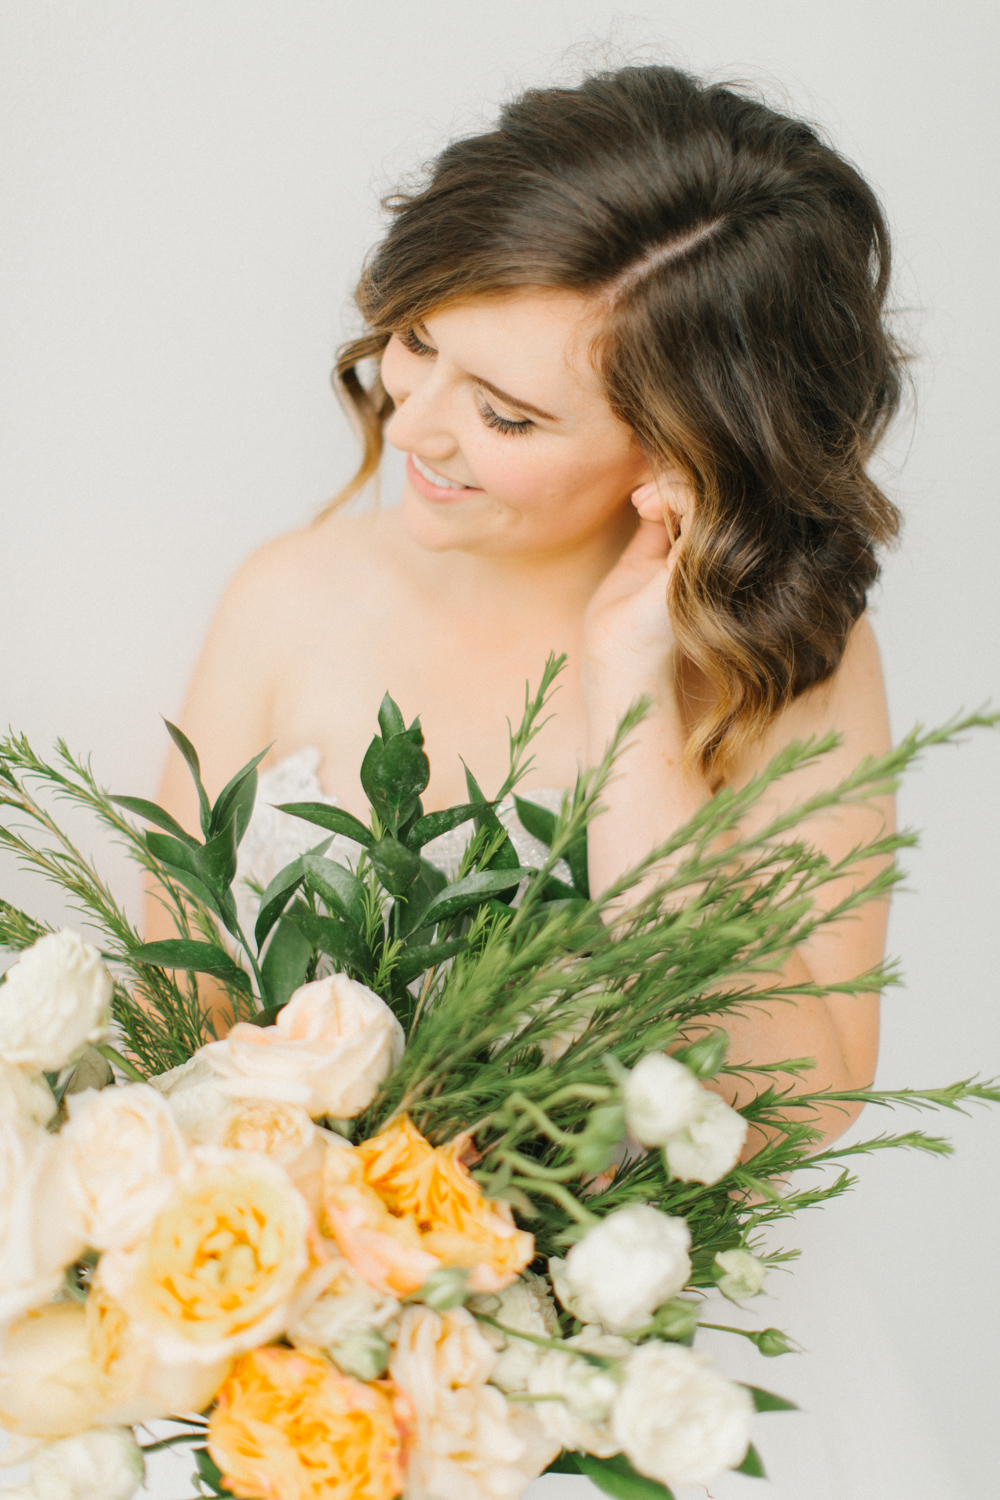 Seattle Fine Art Wedding Photographer | Seattle Downtown White Studio Bridal Session | Stunning Wedding Bouquet | Seattle Bride | Seattle Wedding | Photography Studio Space | Emma Rose Company Wedding Photography-27.jpg